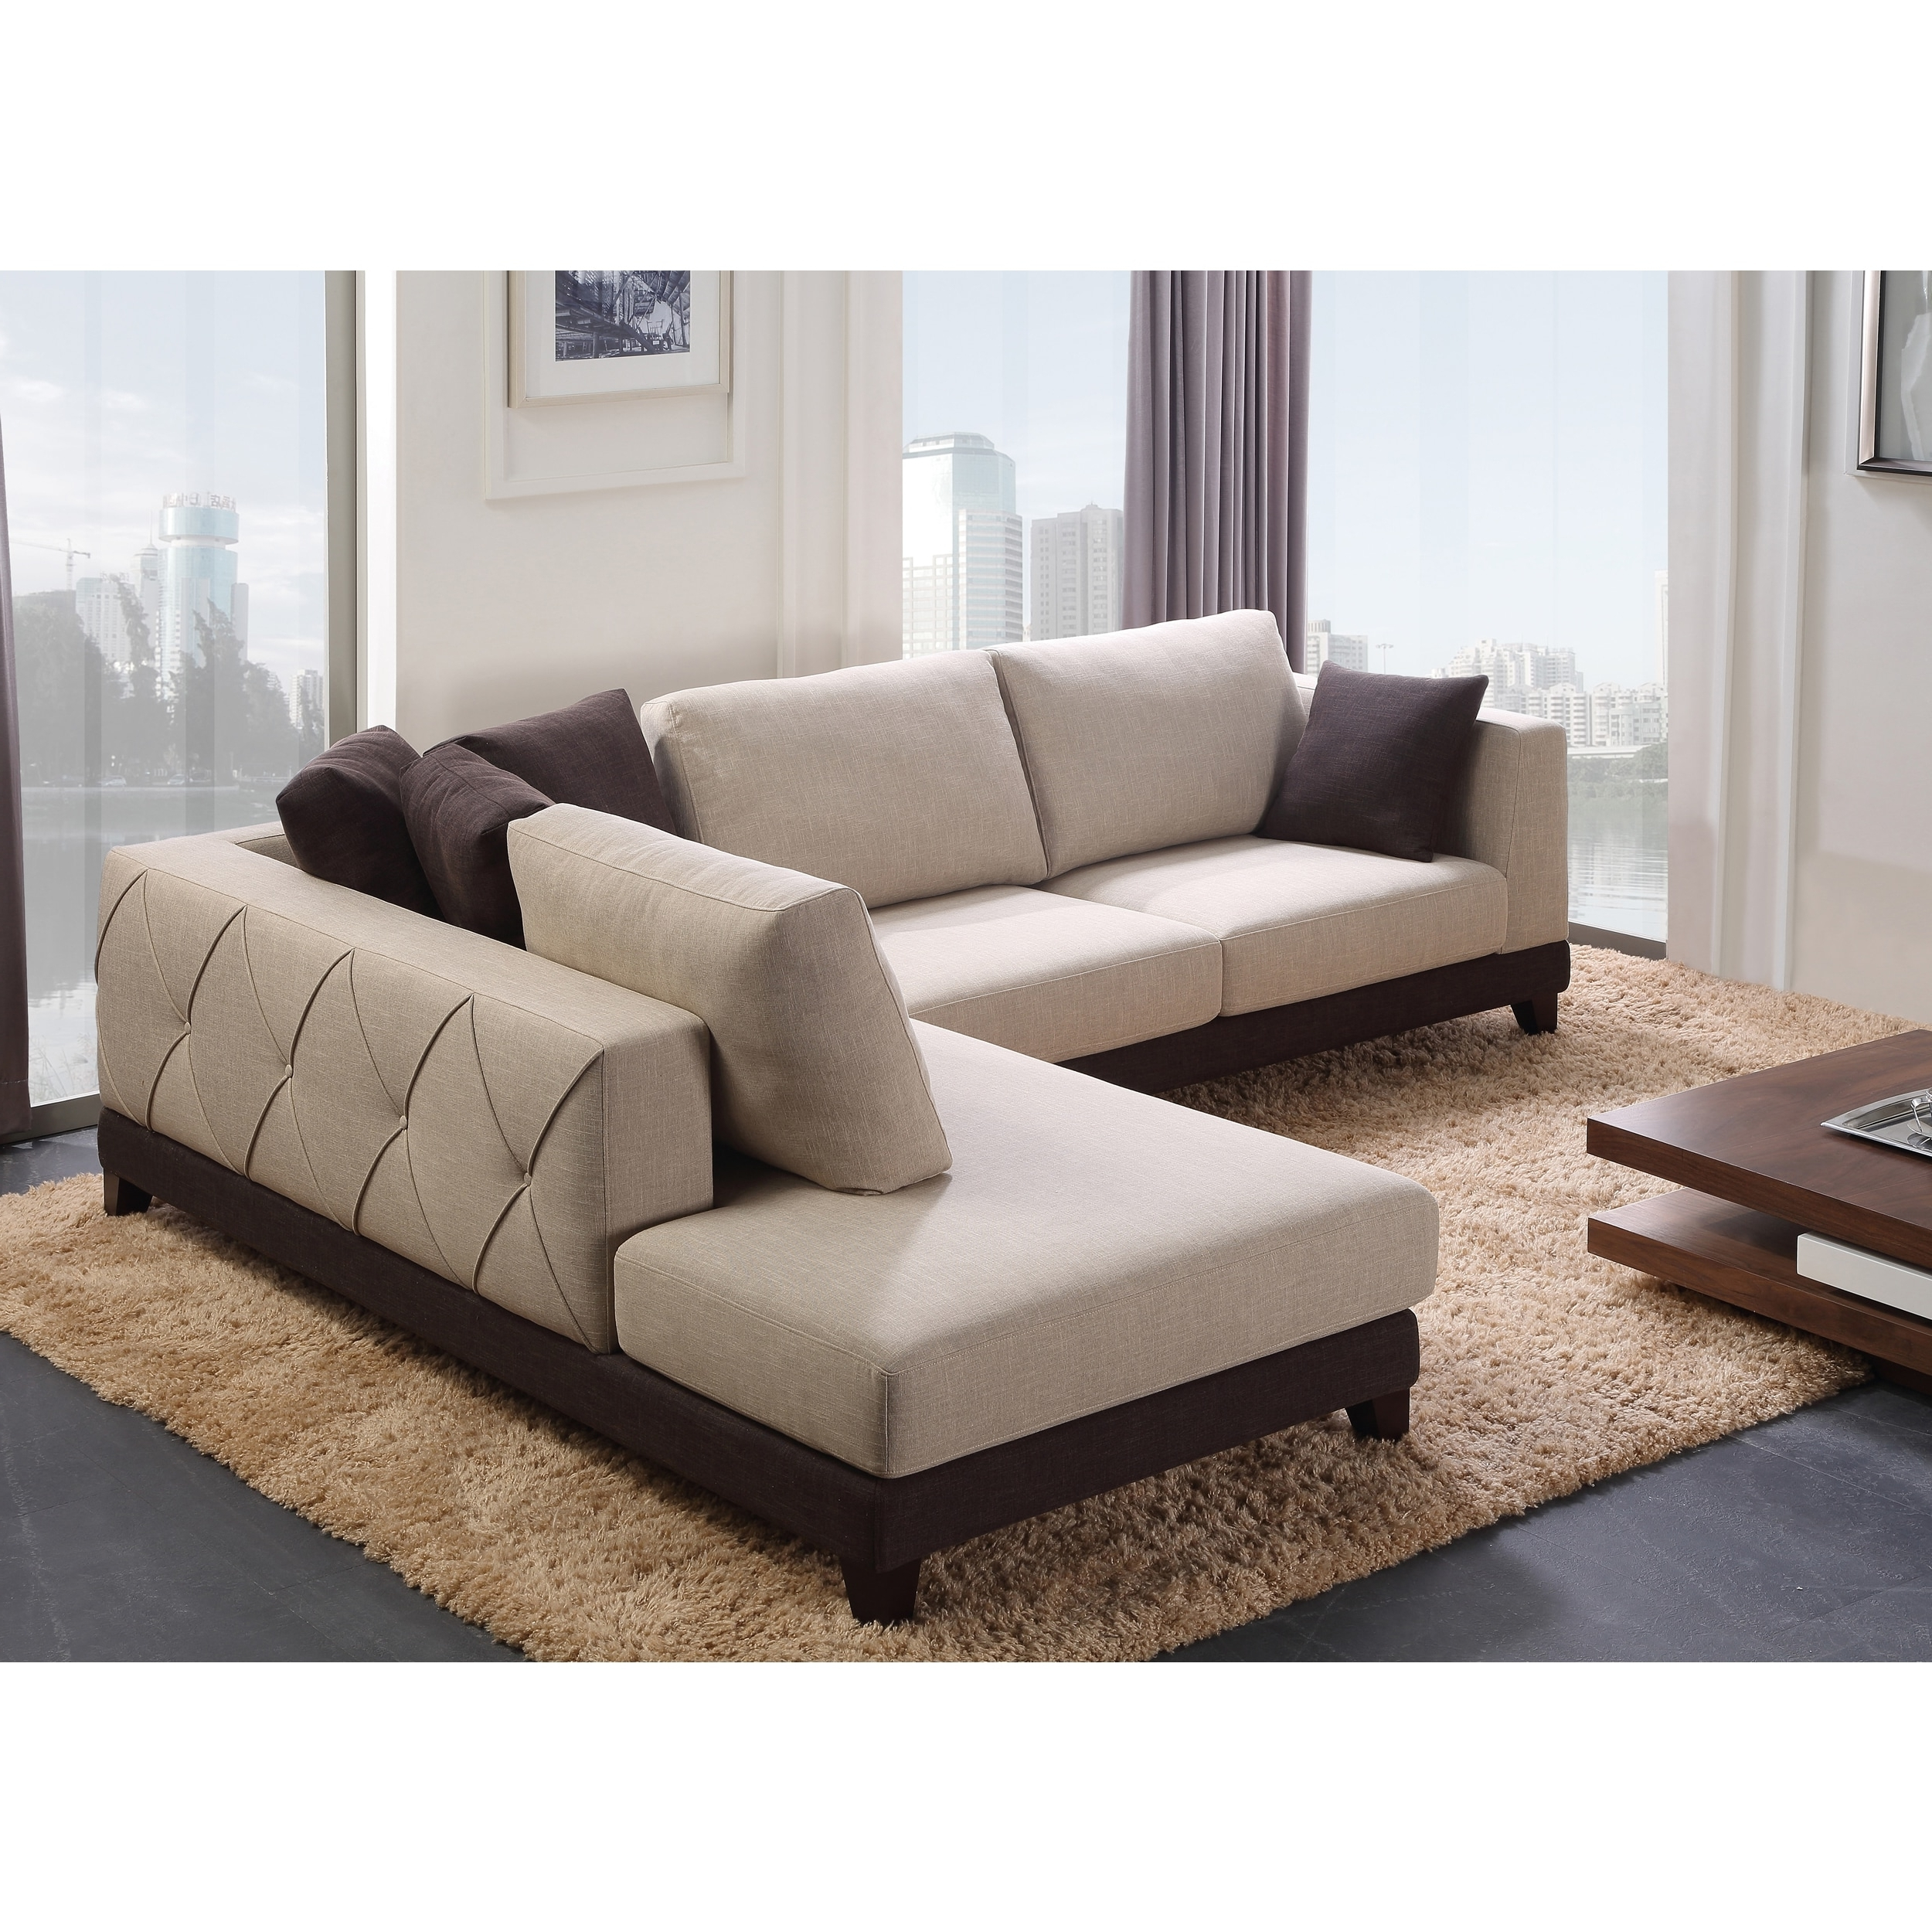 Abbyson Sectional Sofas Throughout Most Popular Abbyson 'verona' Fabric Sectional Sofa – Free Shipping Today (View 7 of 15)